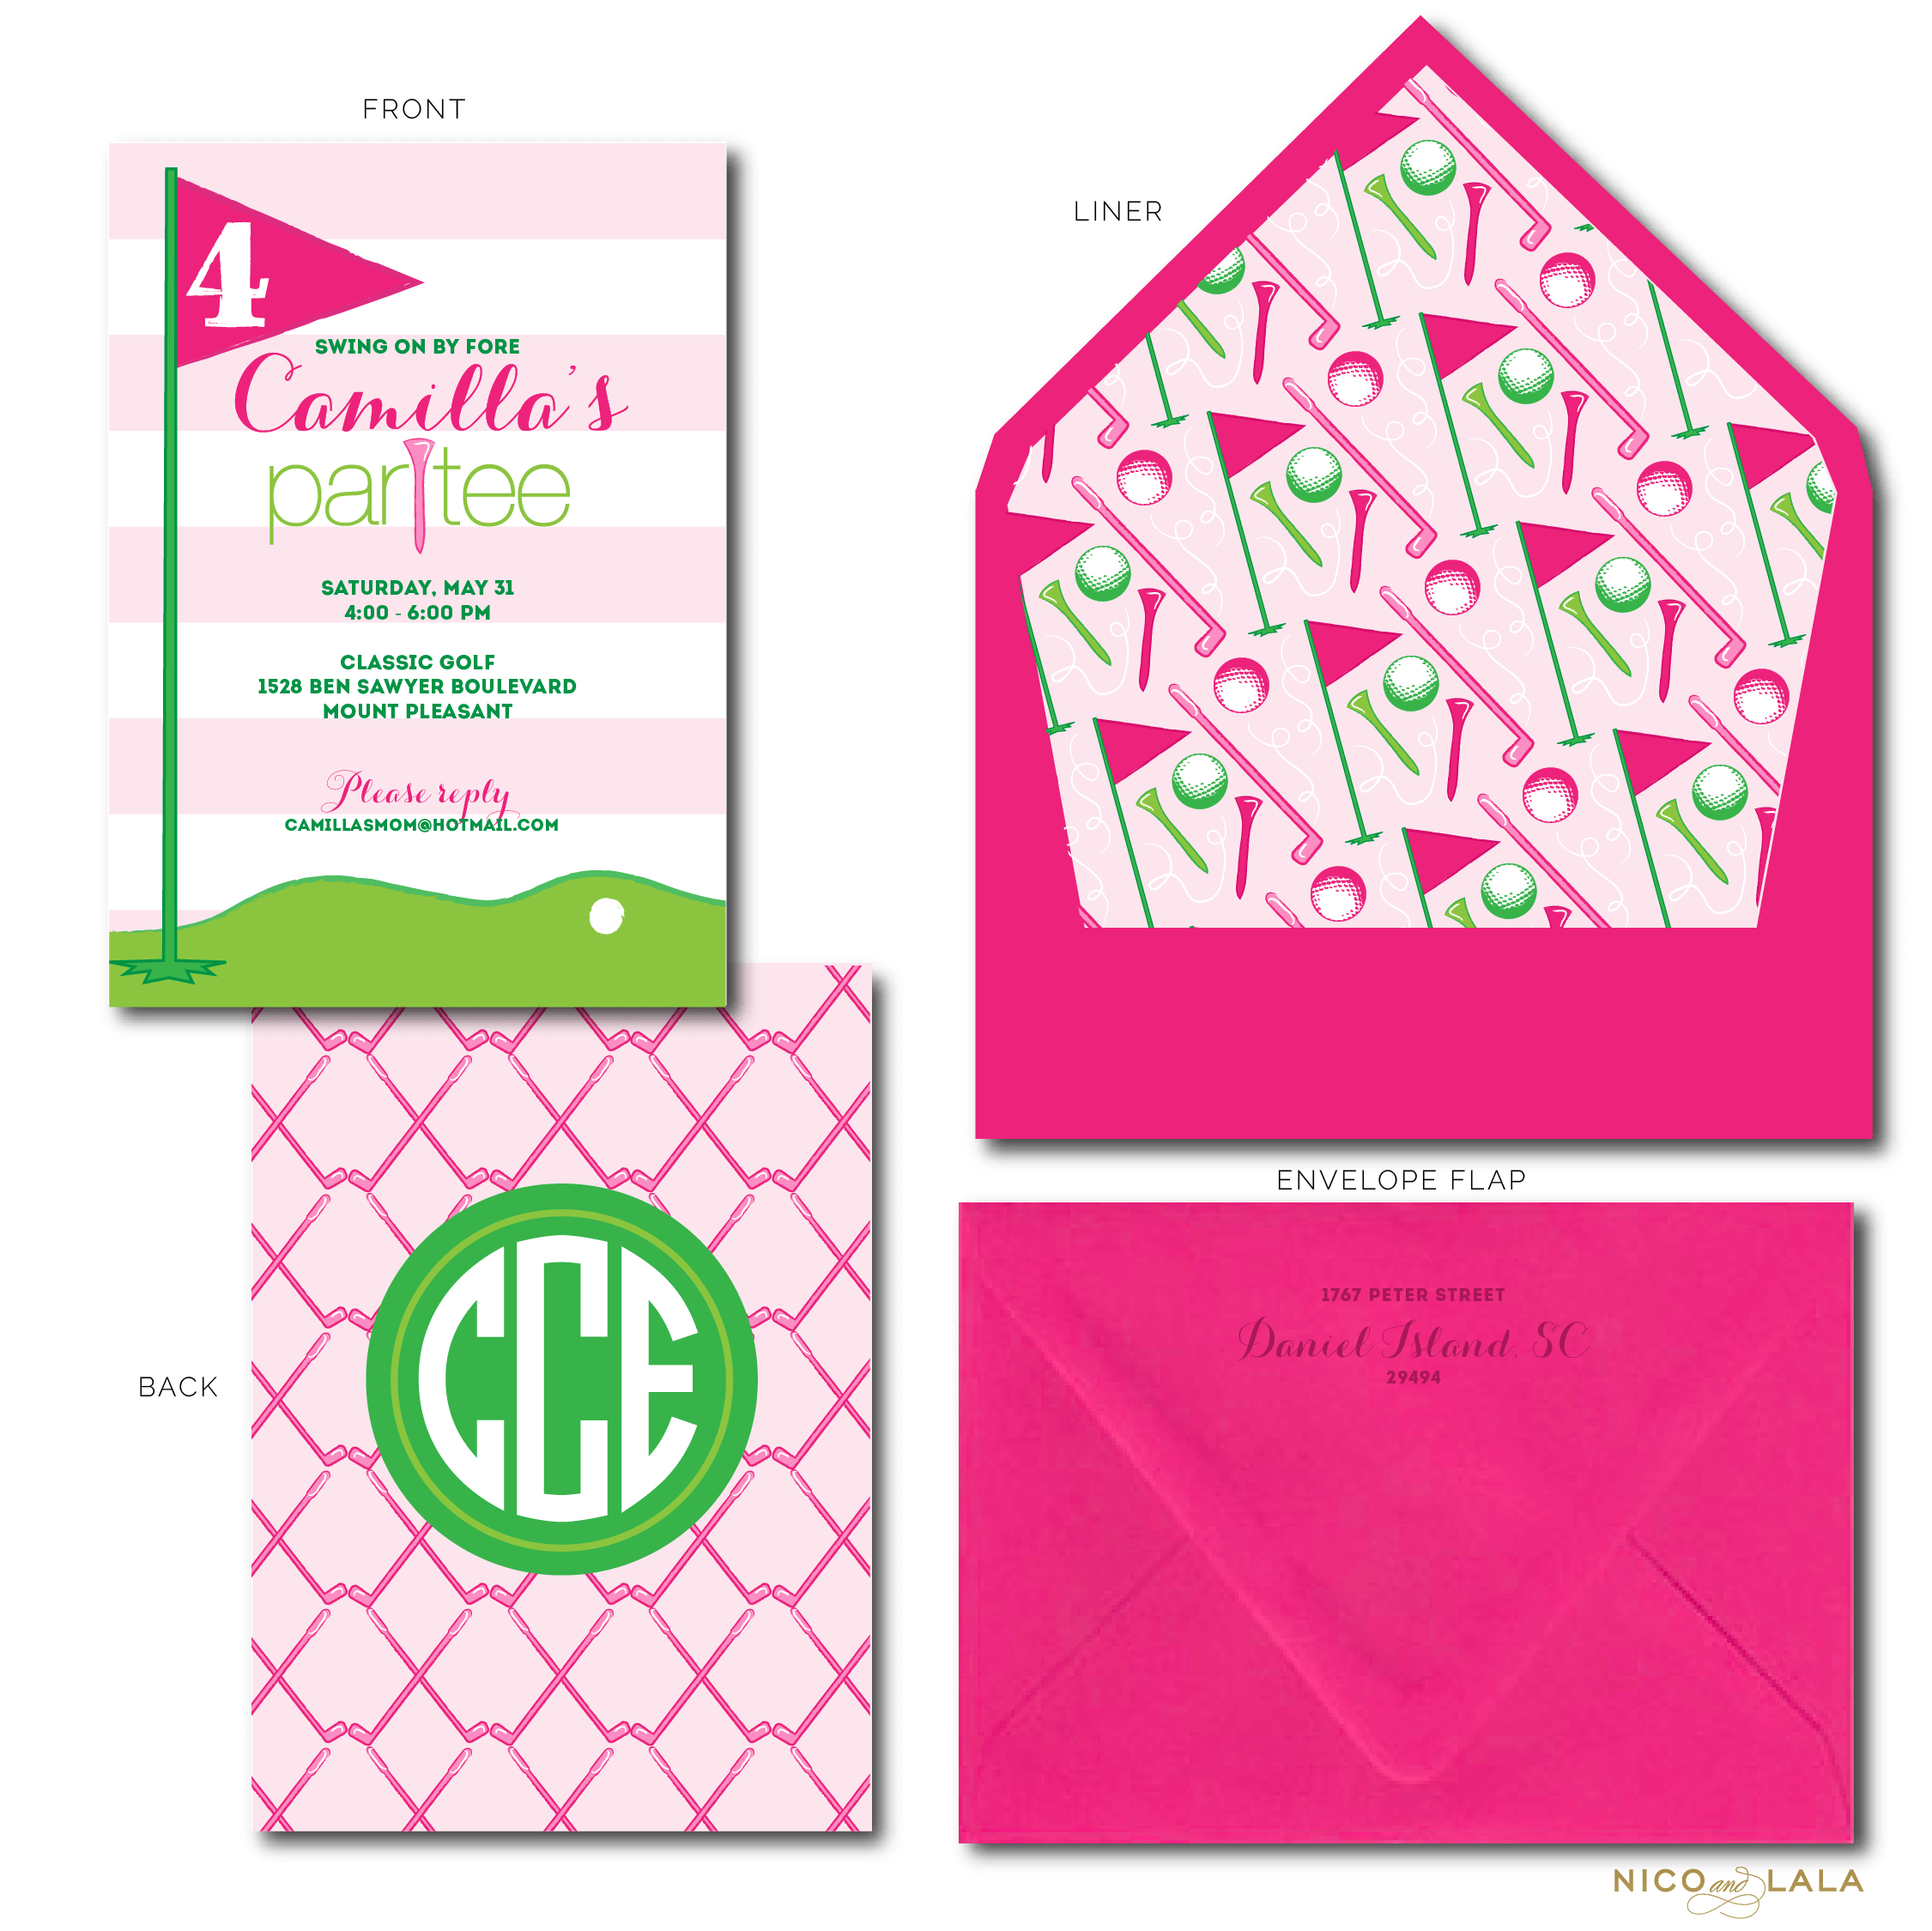 Girly golf birthday invitations nico and lala girly golf birthday invitation filmwisefo Image collections